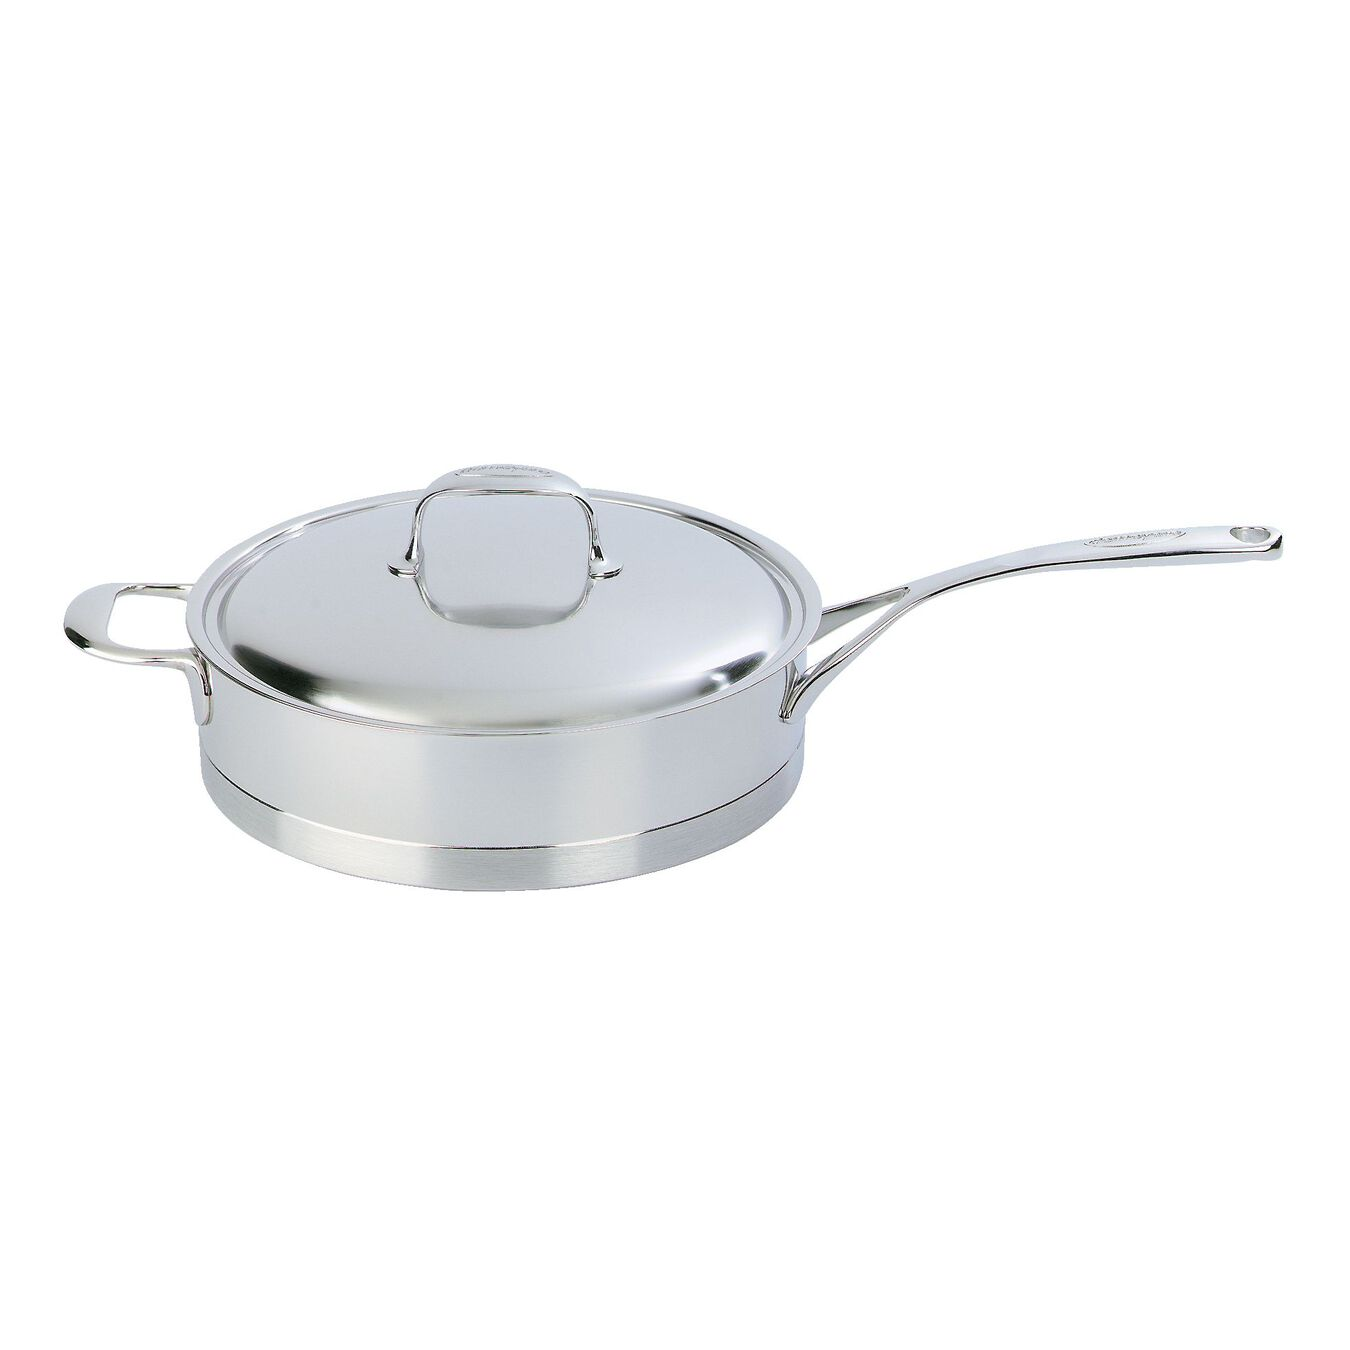 11-inch Saute pan with lid, 18/10 Stainless Steel ,,large 1